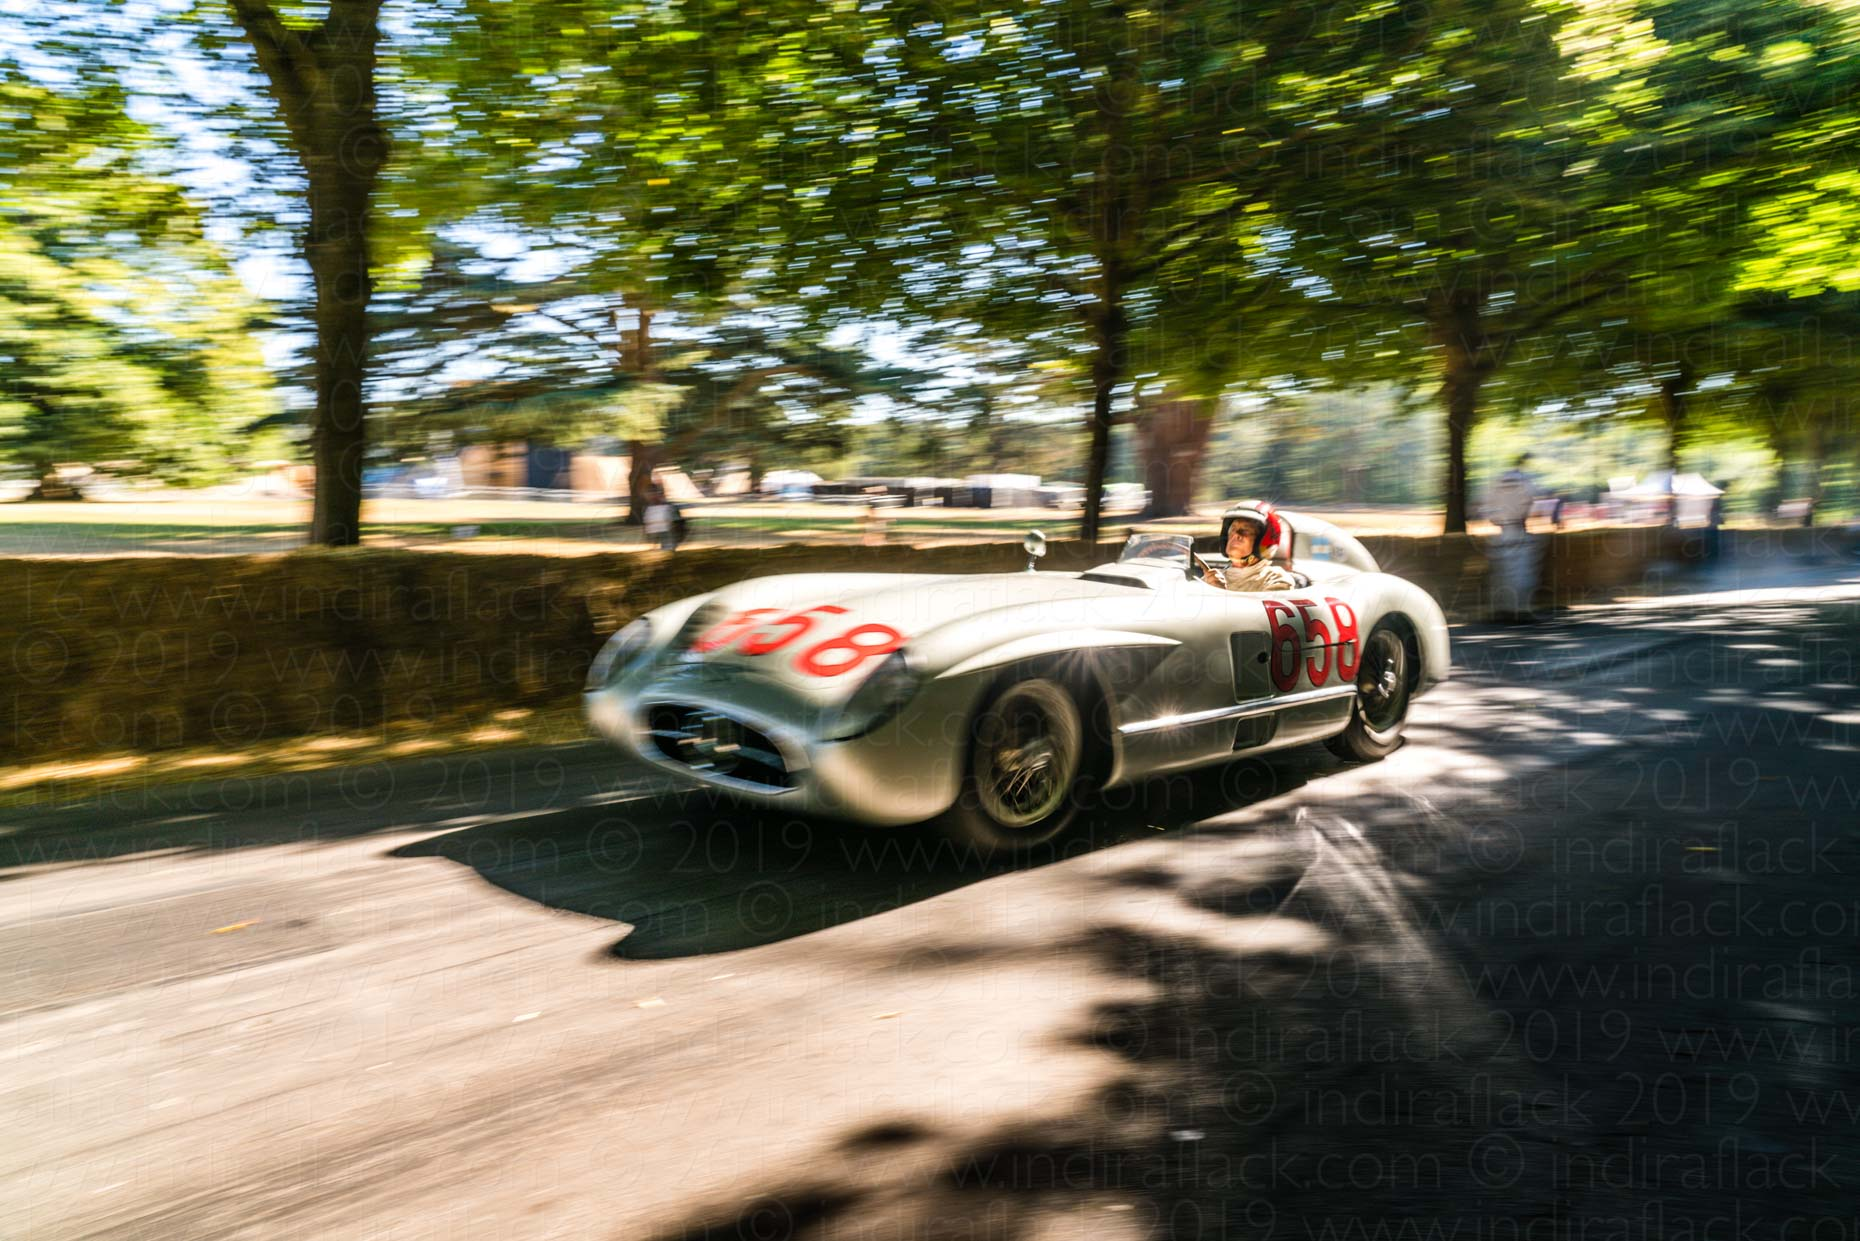 Mercedes-Benz 300SLR driven by Giacomo Agostini at Goodwood Festival of Speed captured by Indira Flack Photography